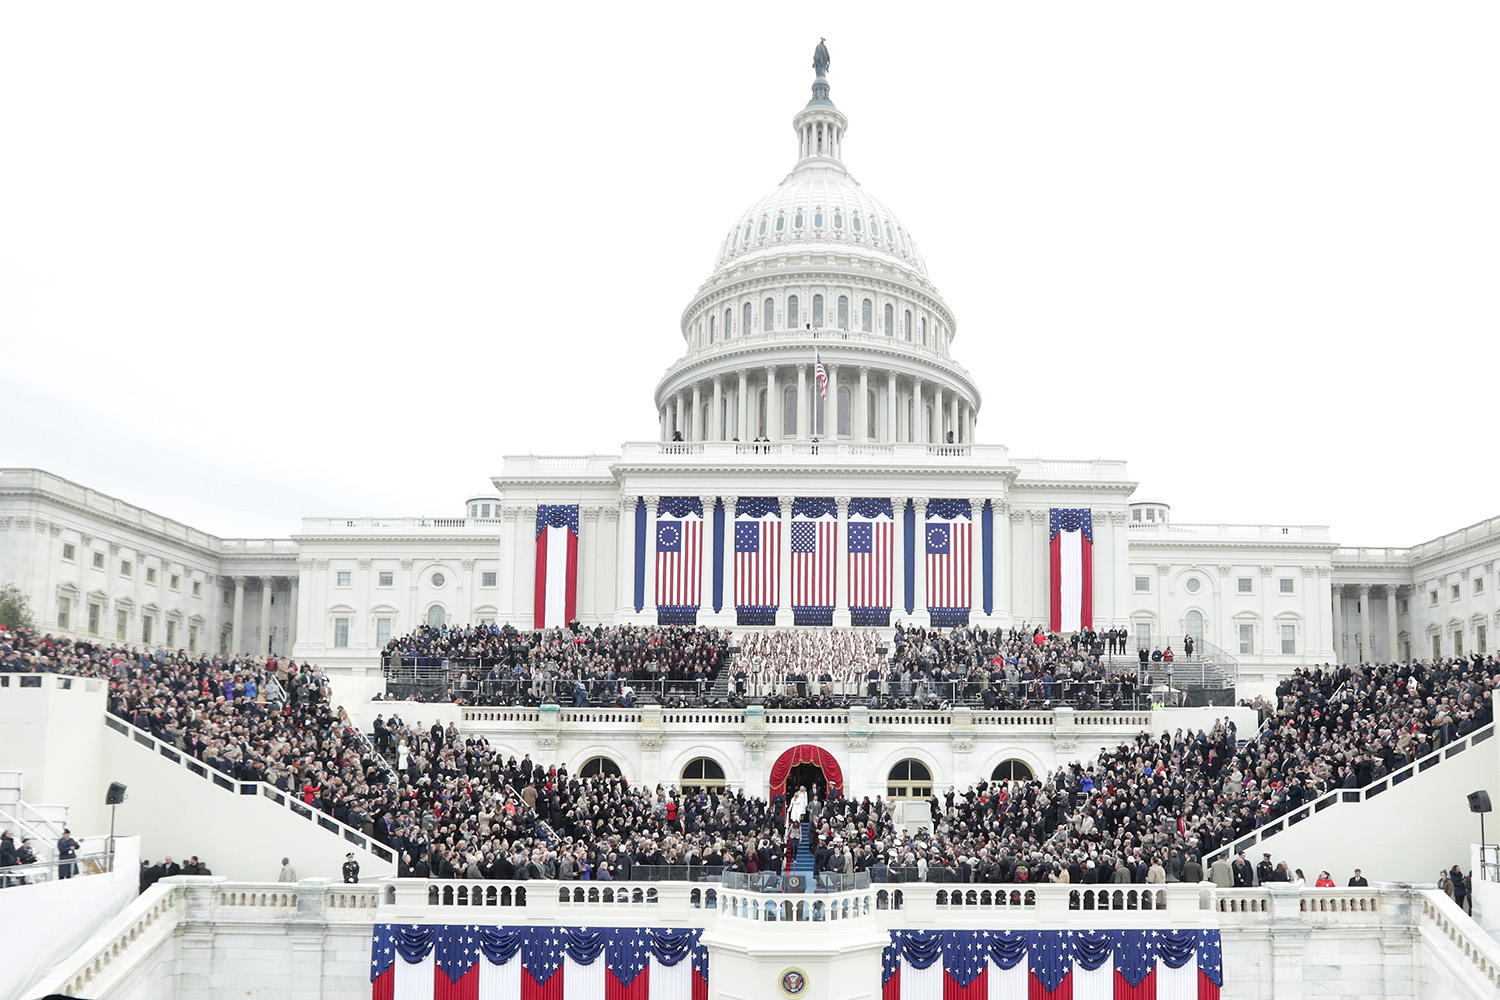 WASHINGTON, DC - JANUARY 20: Guests sit on the West Front of the U.S. Capitol on January 20, 2017 in Washington, DC. In today's inauguration ceremony Donald J. Trump becomes the 45th president of the United States. (Photo by Alex Wong/Getty Images)